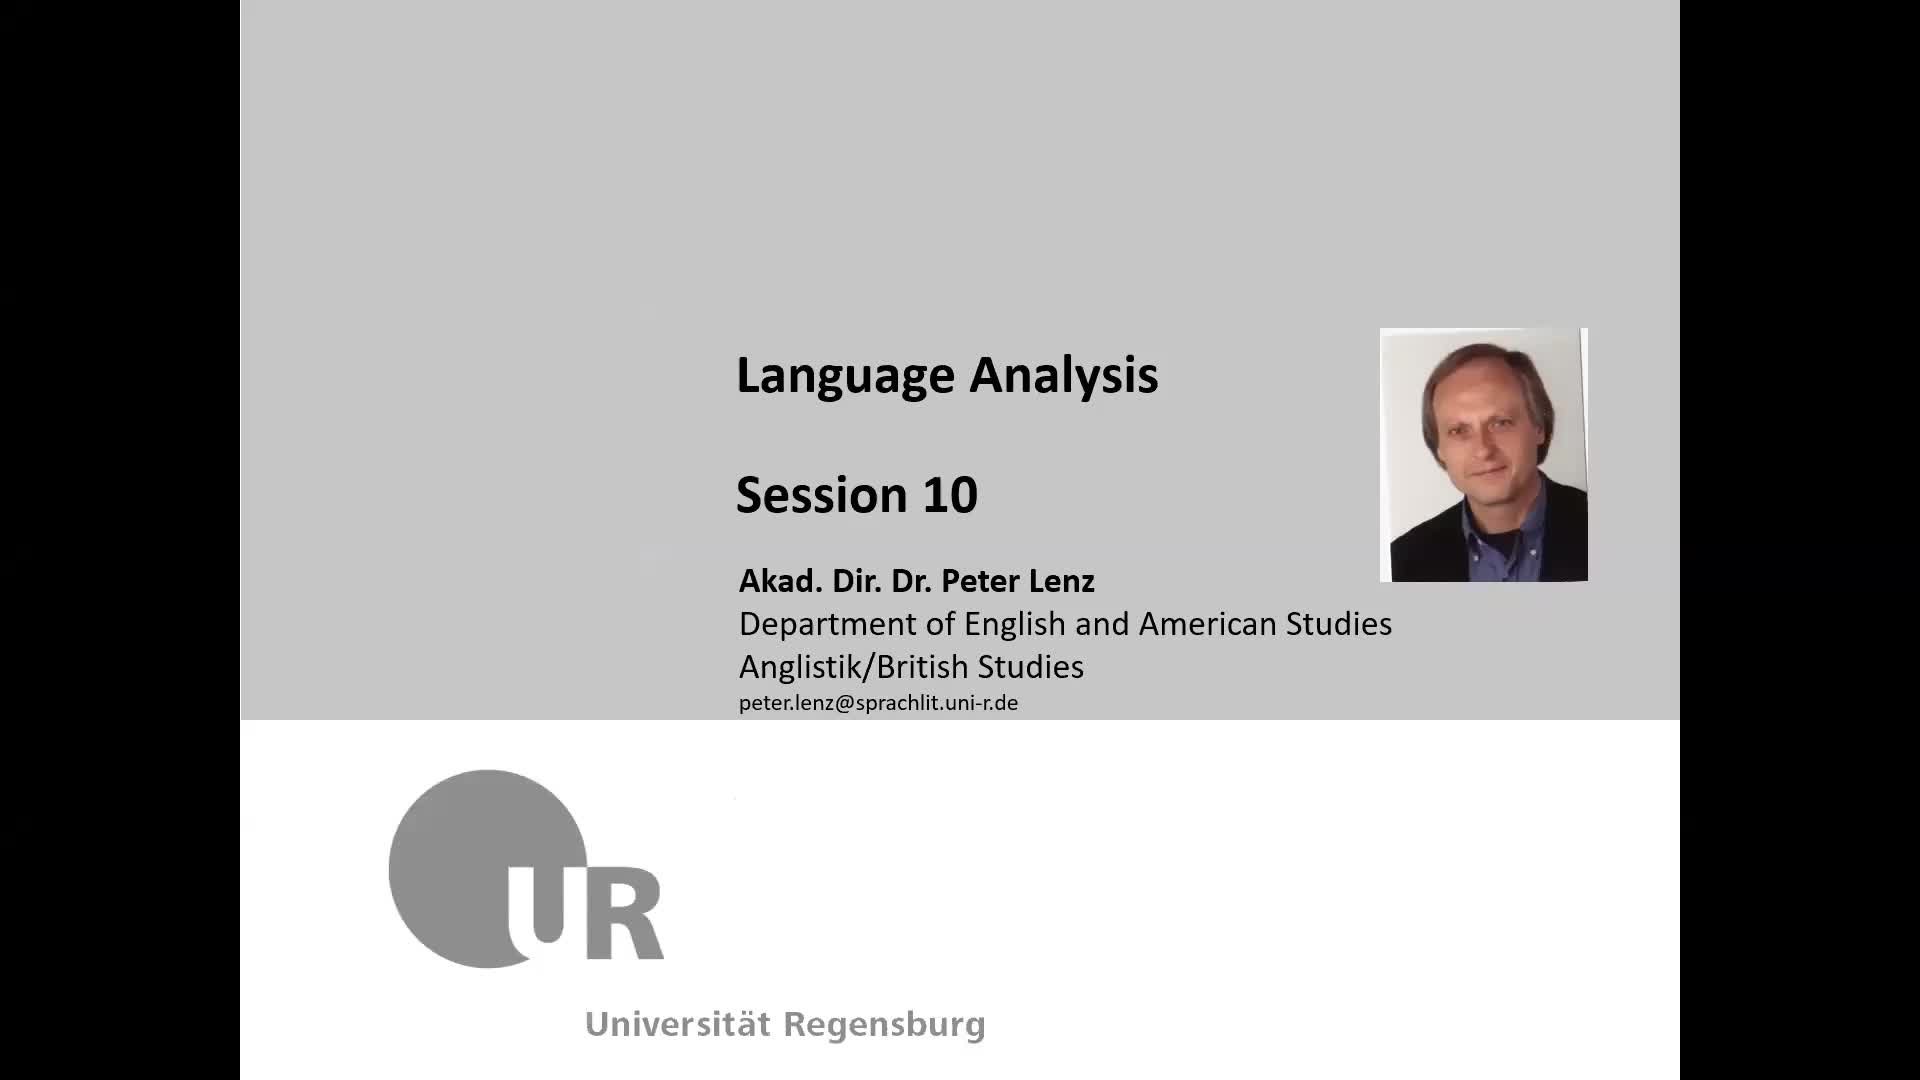 Language Analysis Session 10 Video